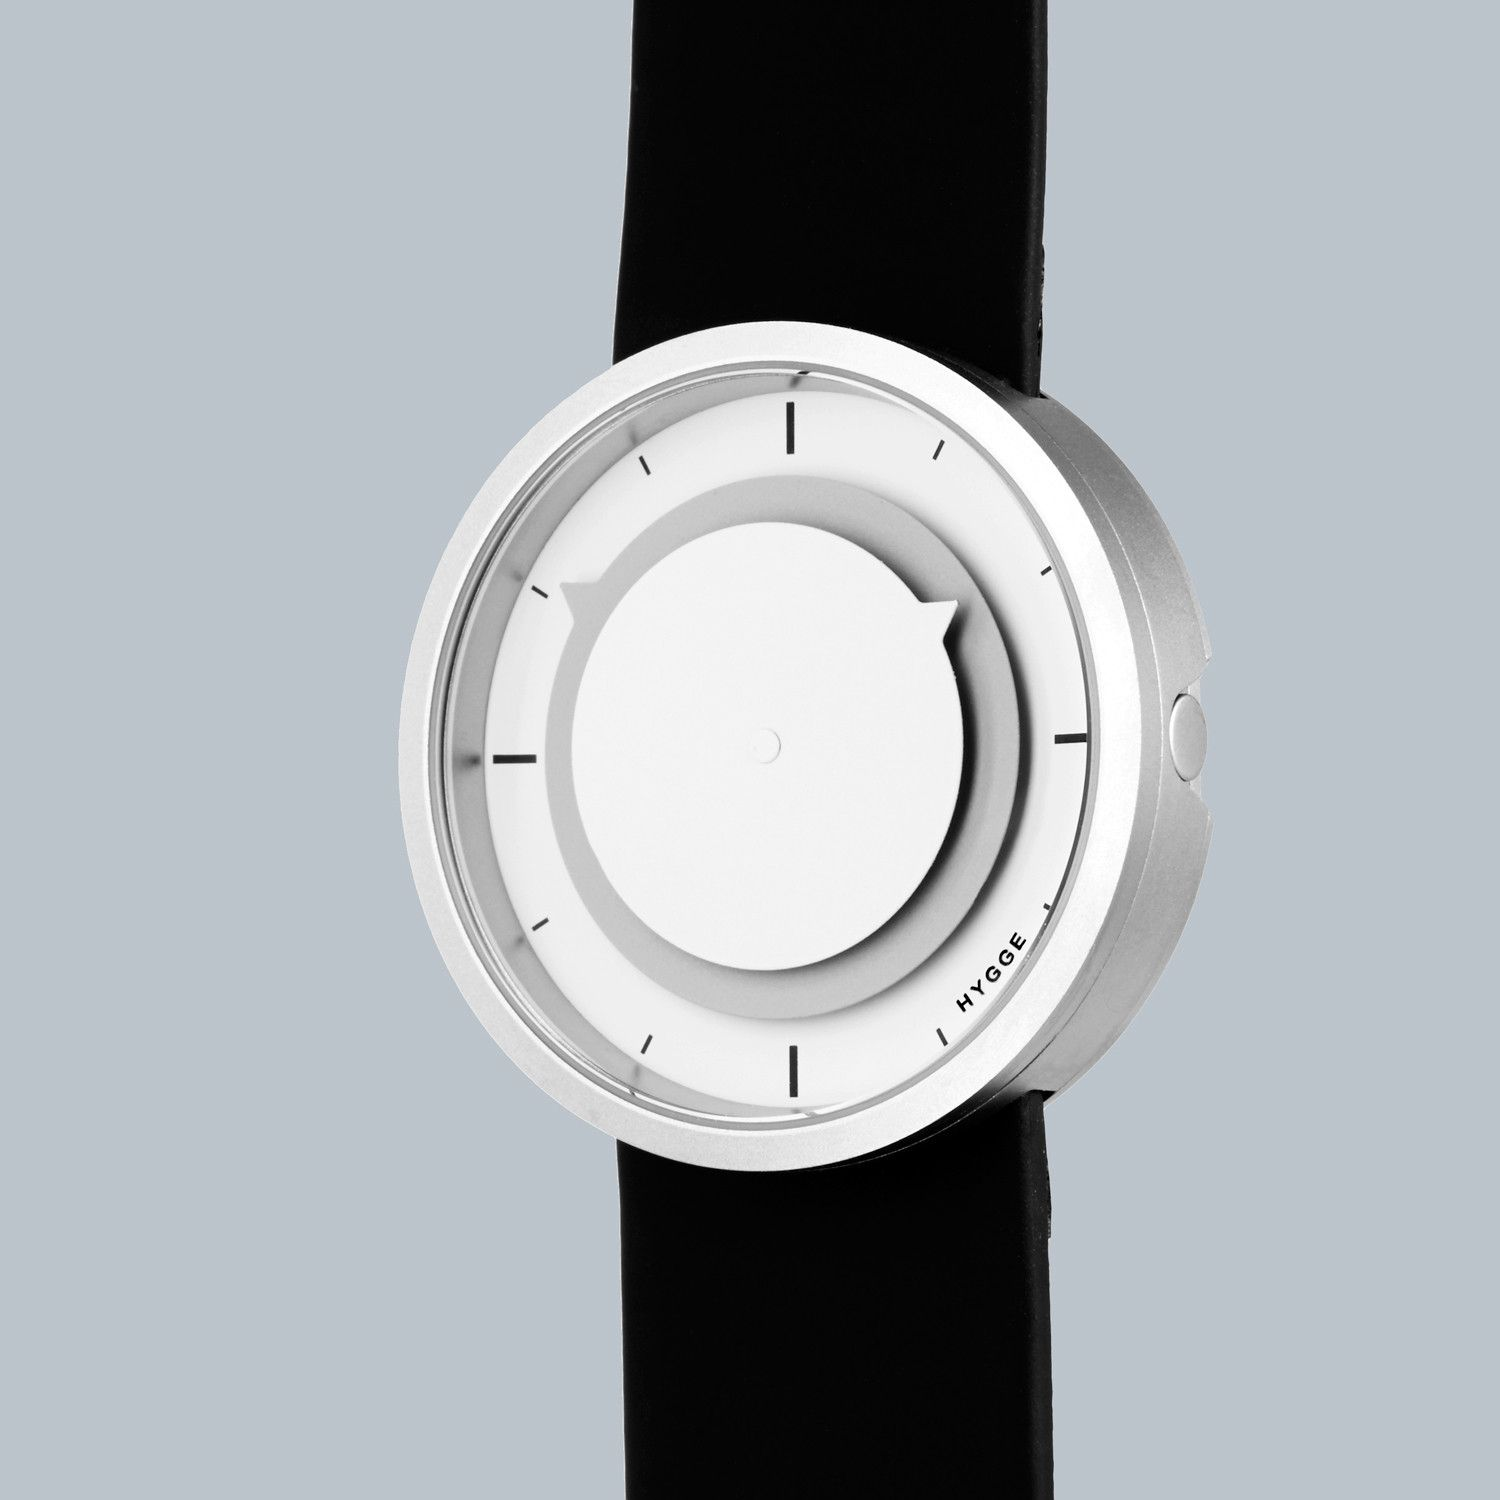 Very nice and clean modern watch from Hygge.